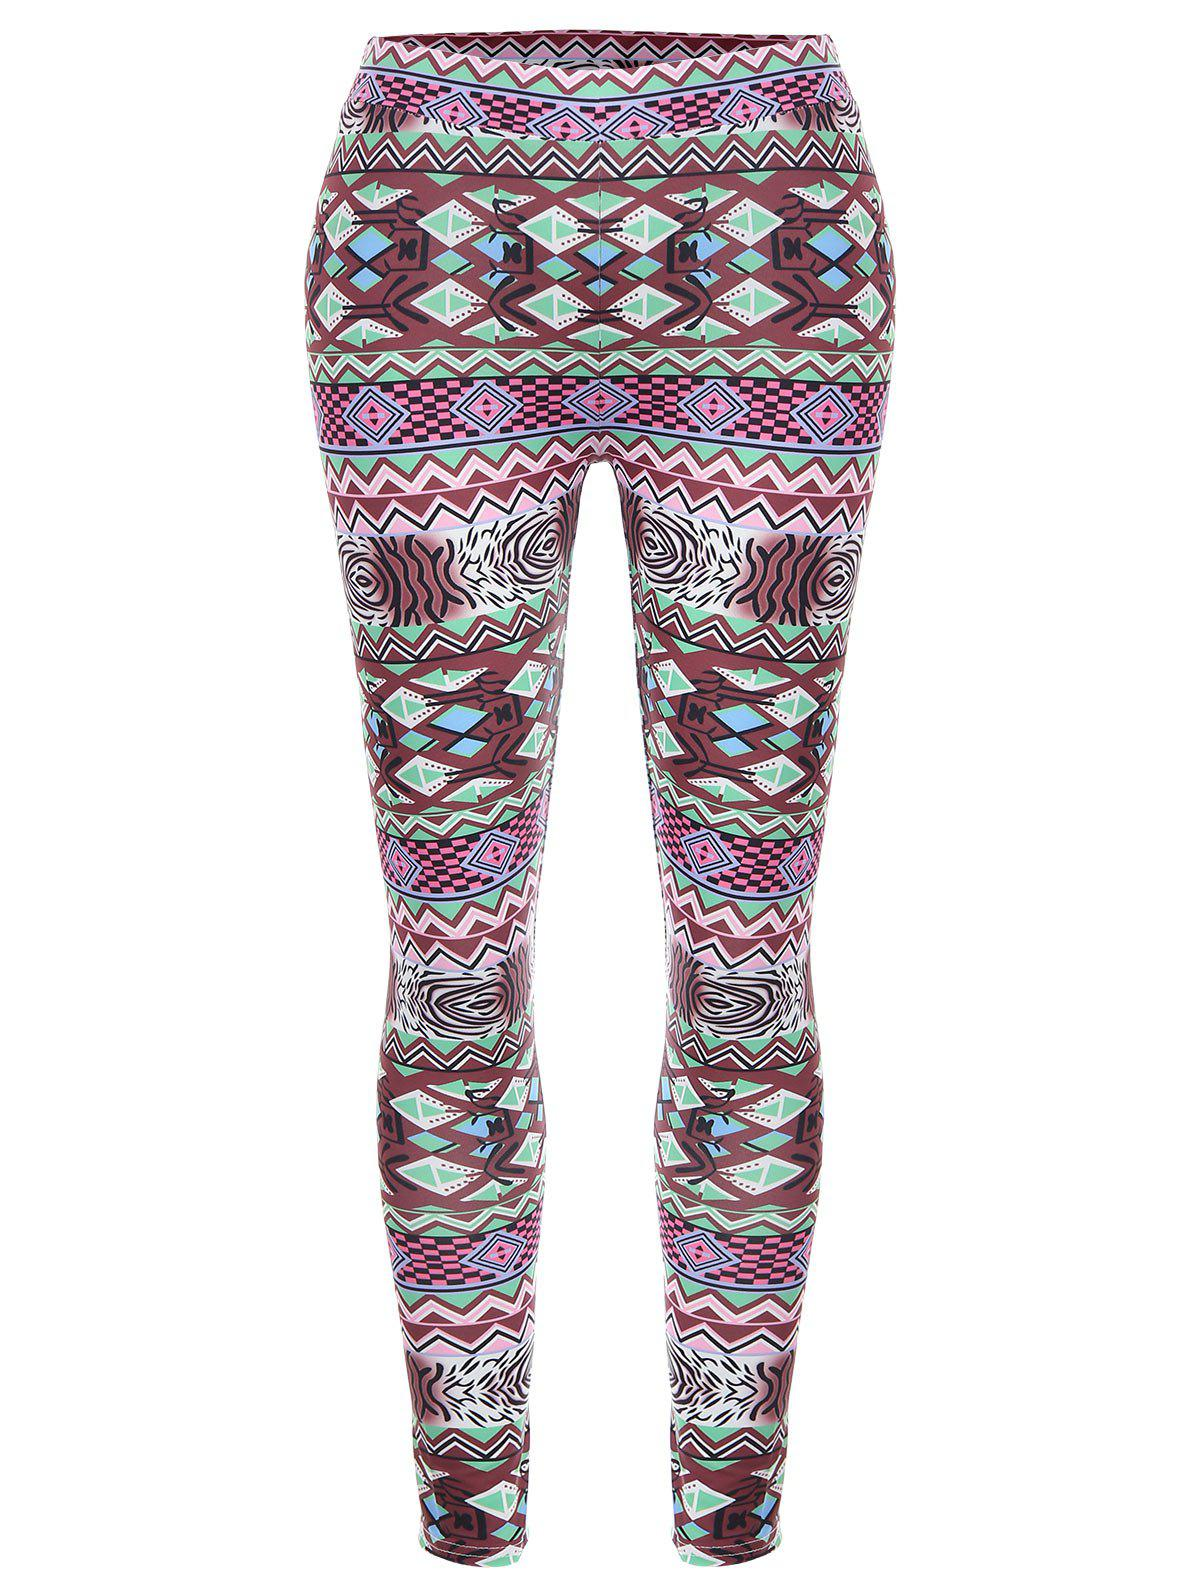 Geometric Print High Waisted Christmas Leggings - multicolor S